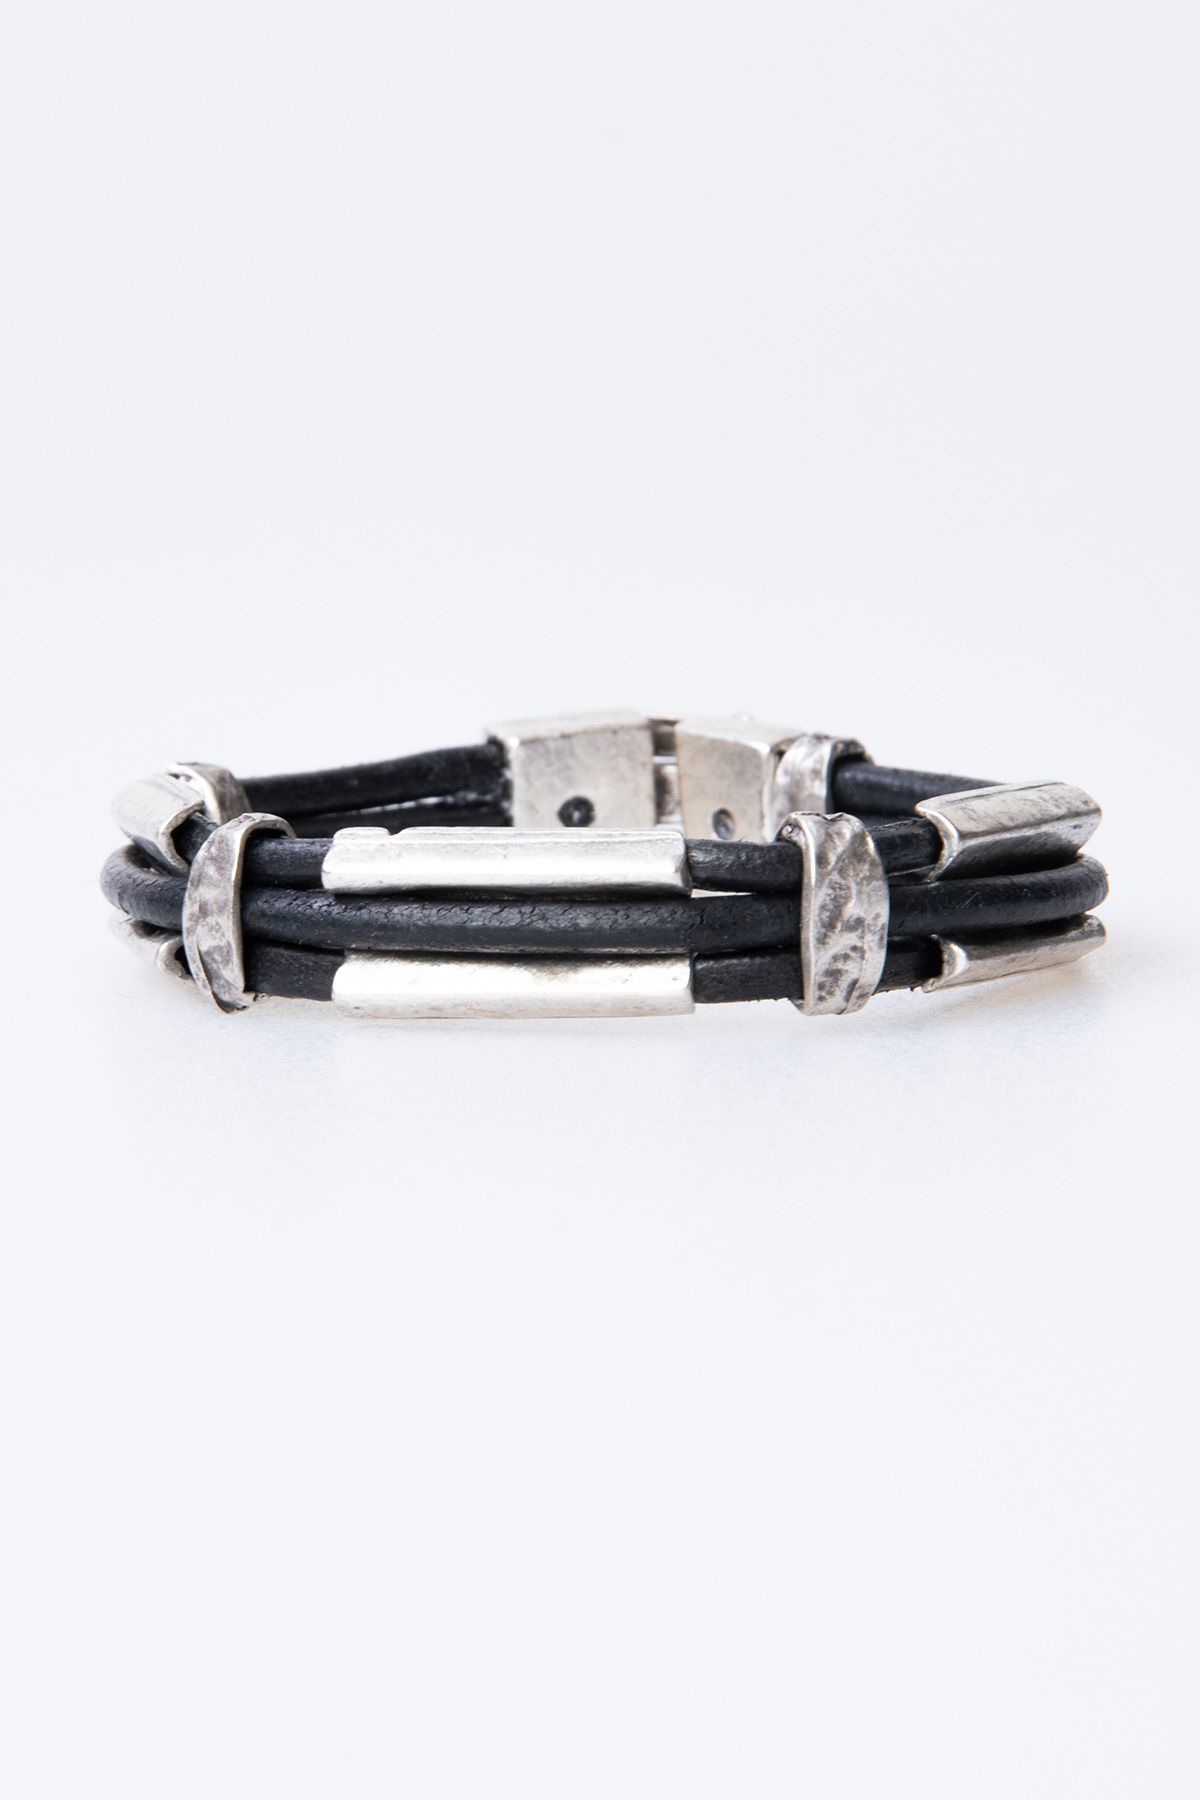 Pegia Genuine Leather Bracelet 19BL30 Black